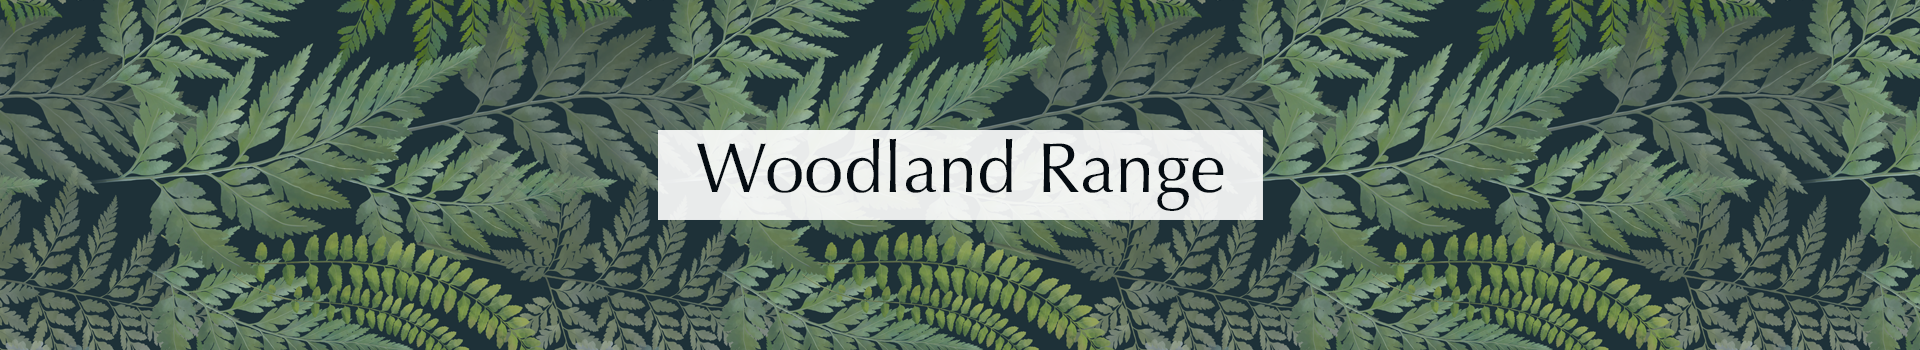 woodland-range-category-banner-celina-digby.png